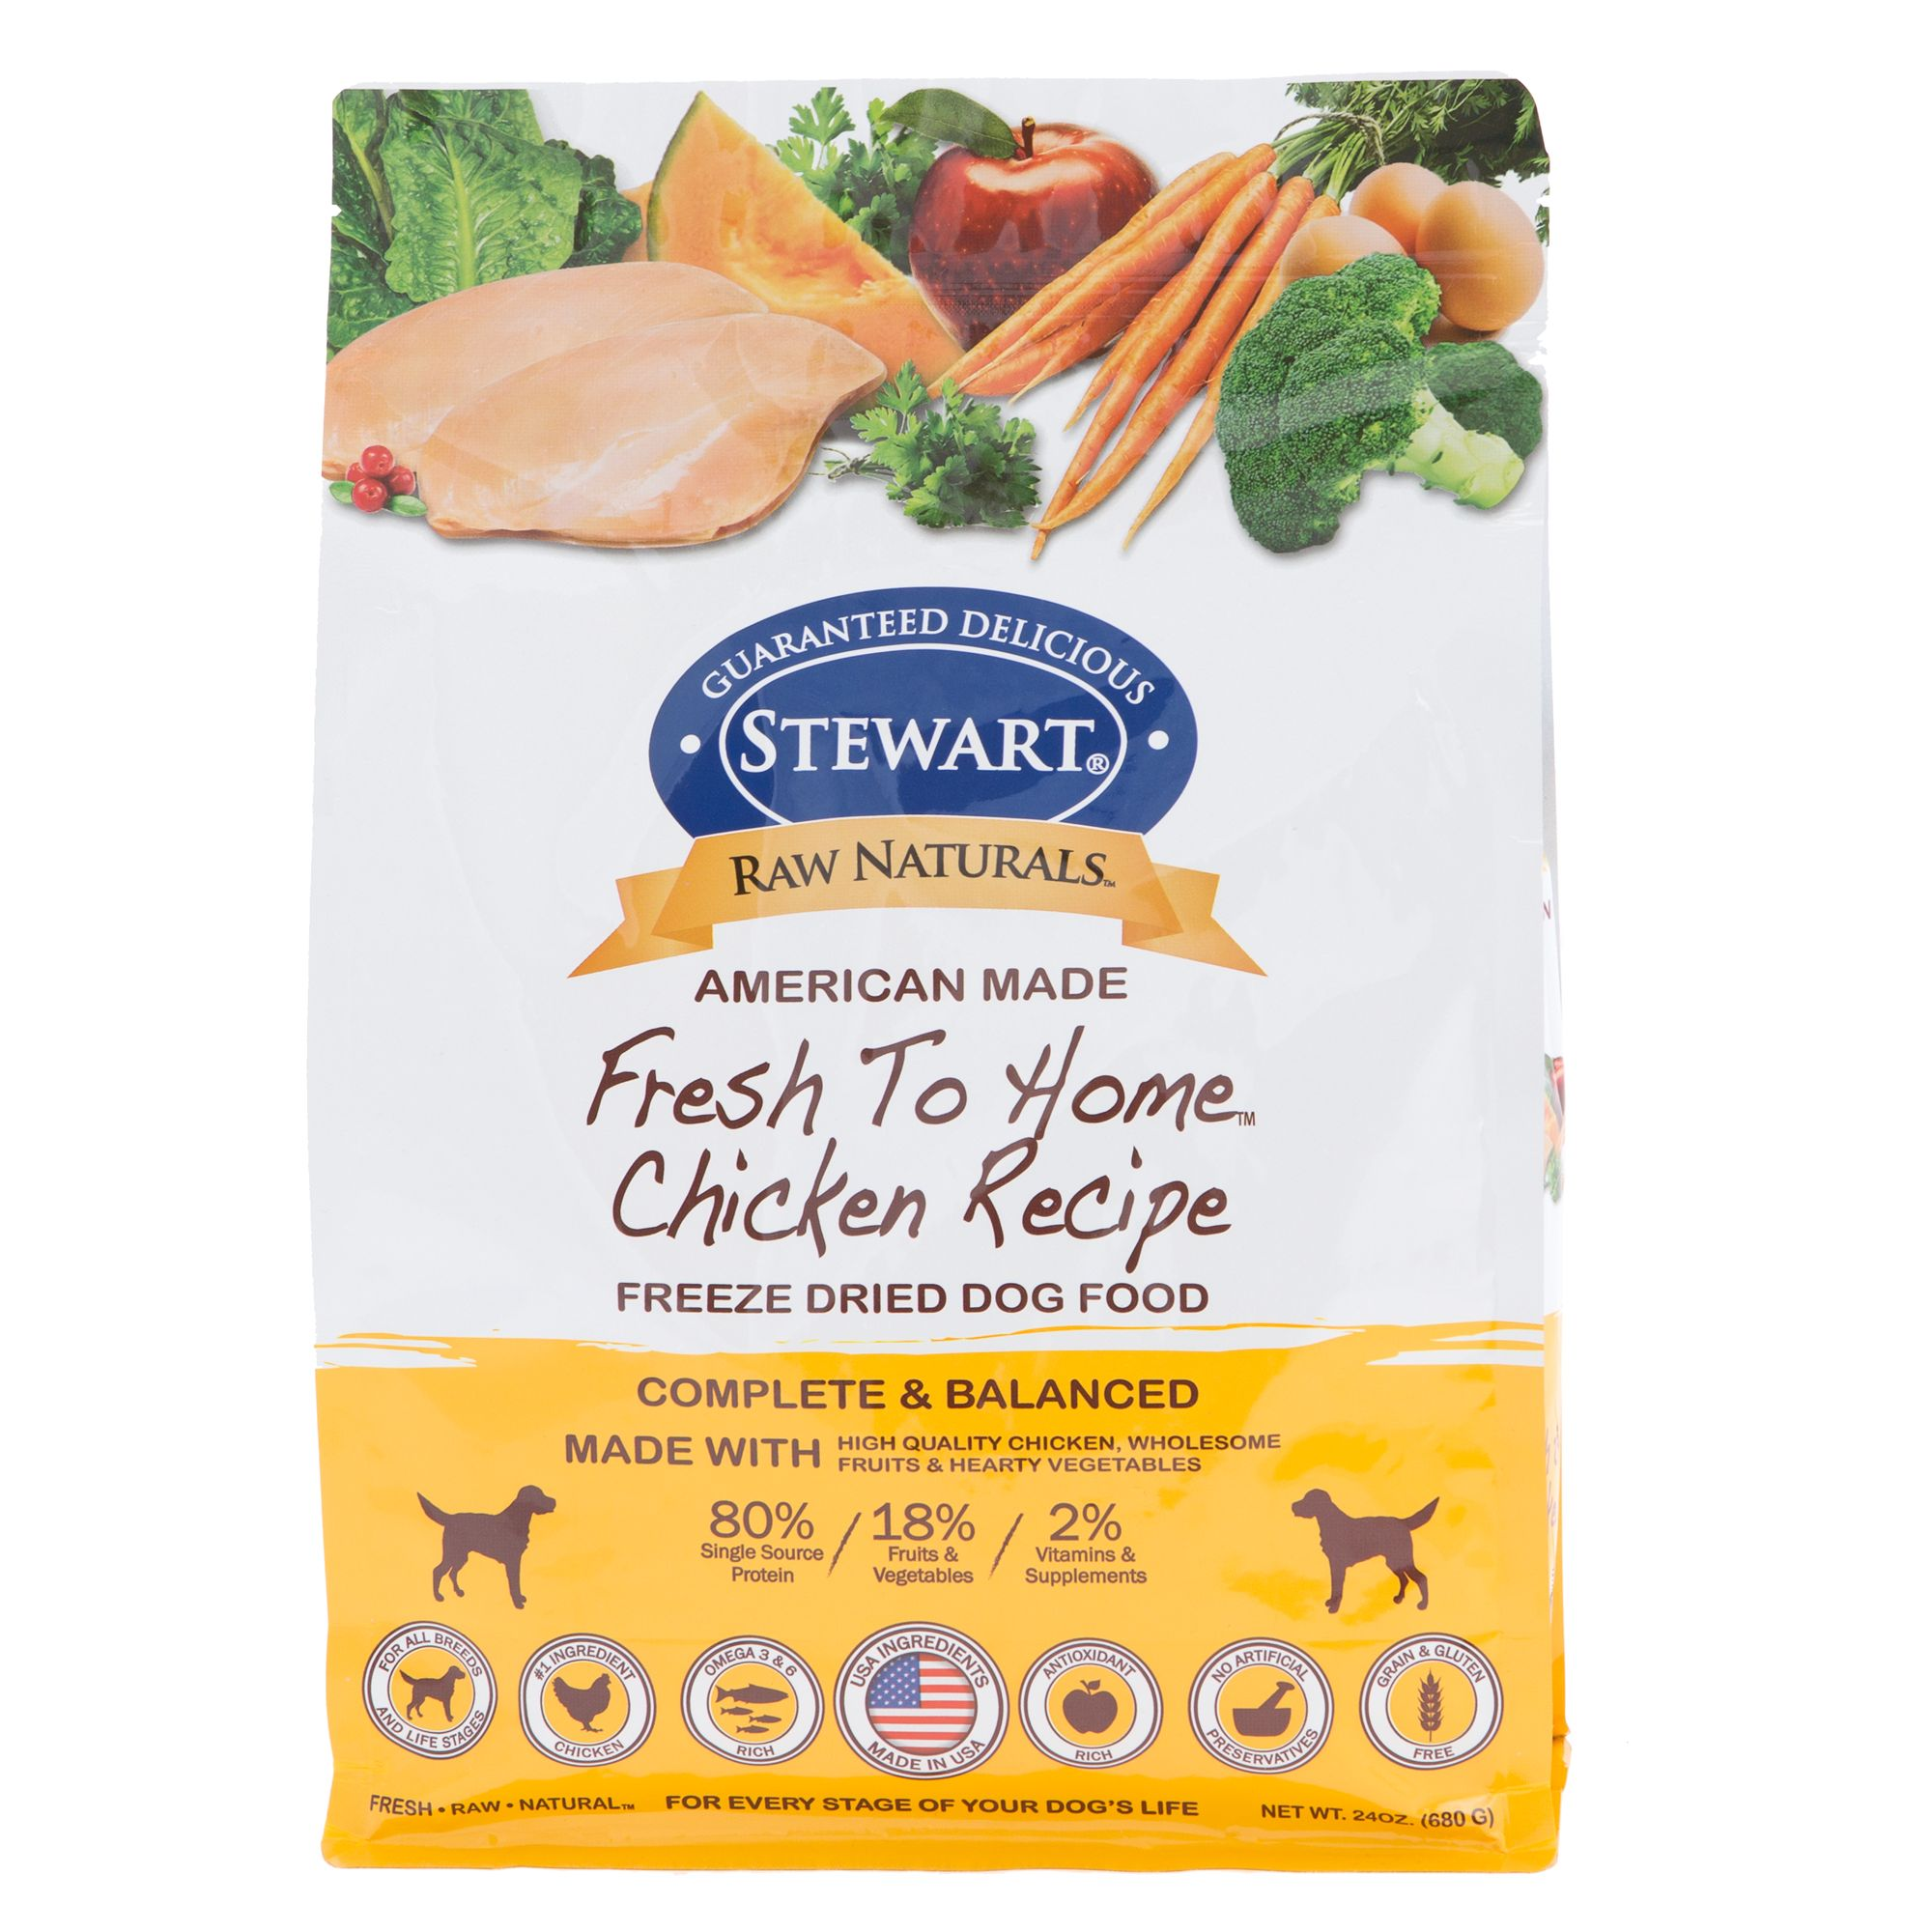 Stewart Raw Naturals Dog Food Freeze Dried Chicken Size 24 Oz